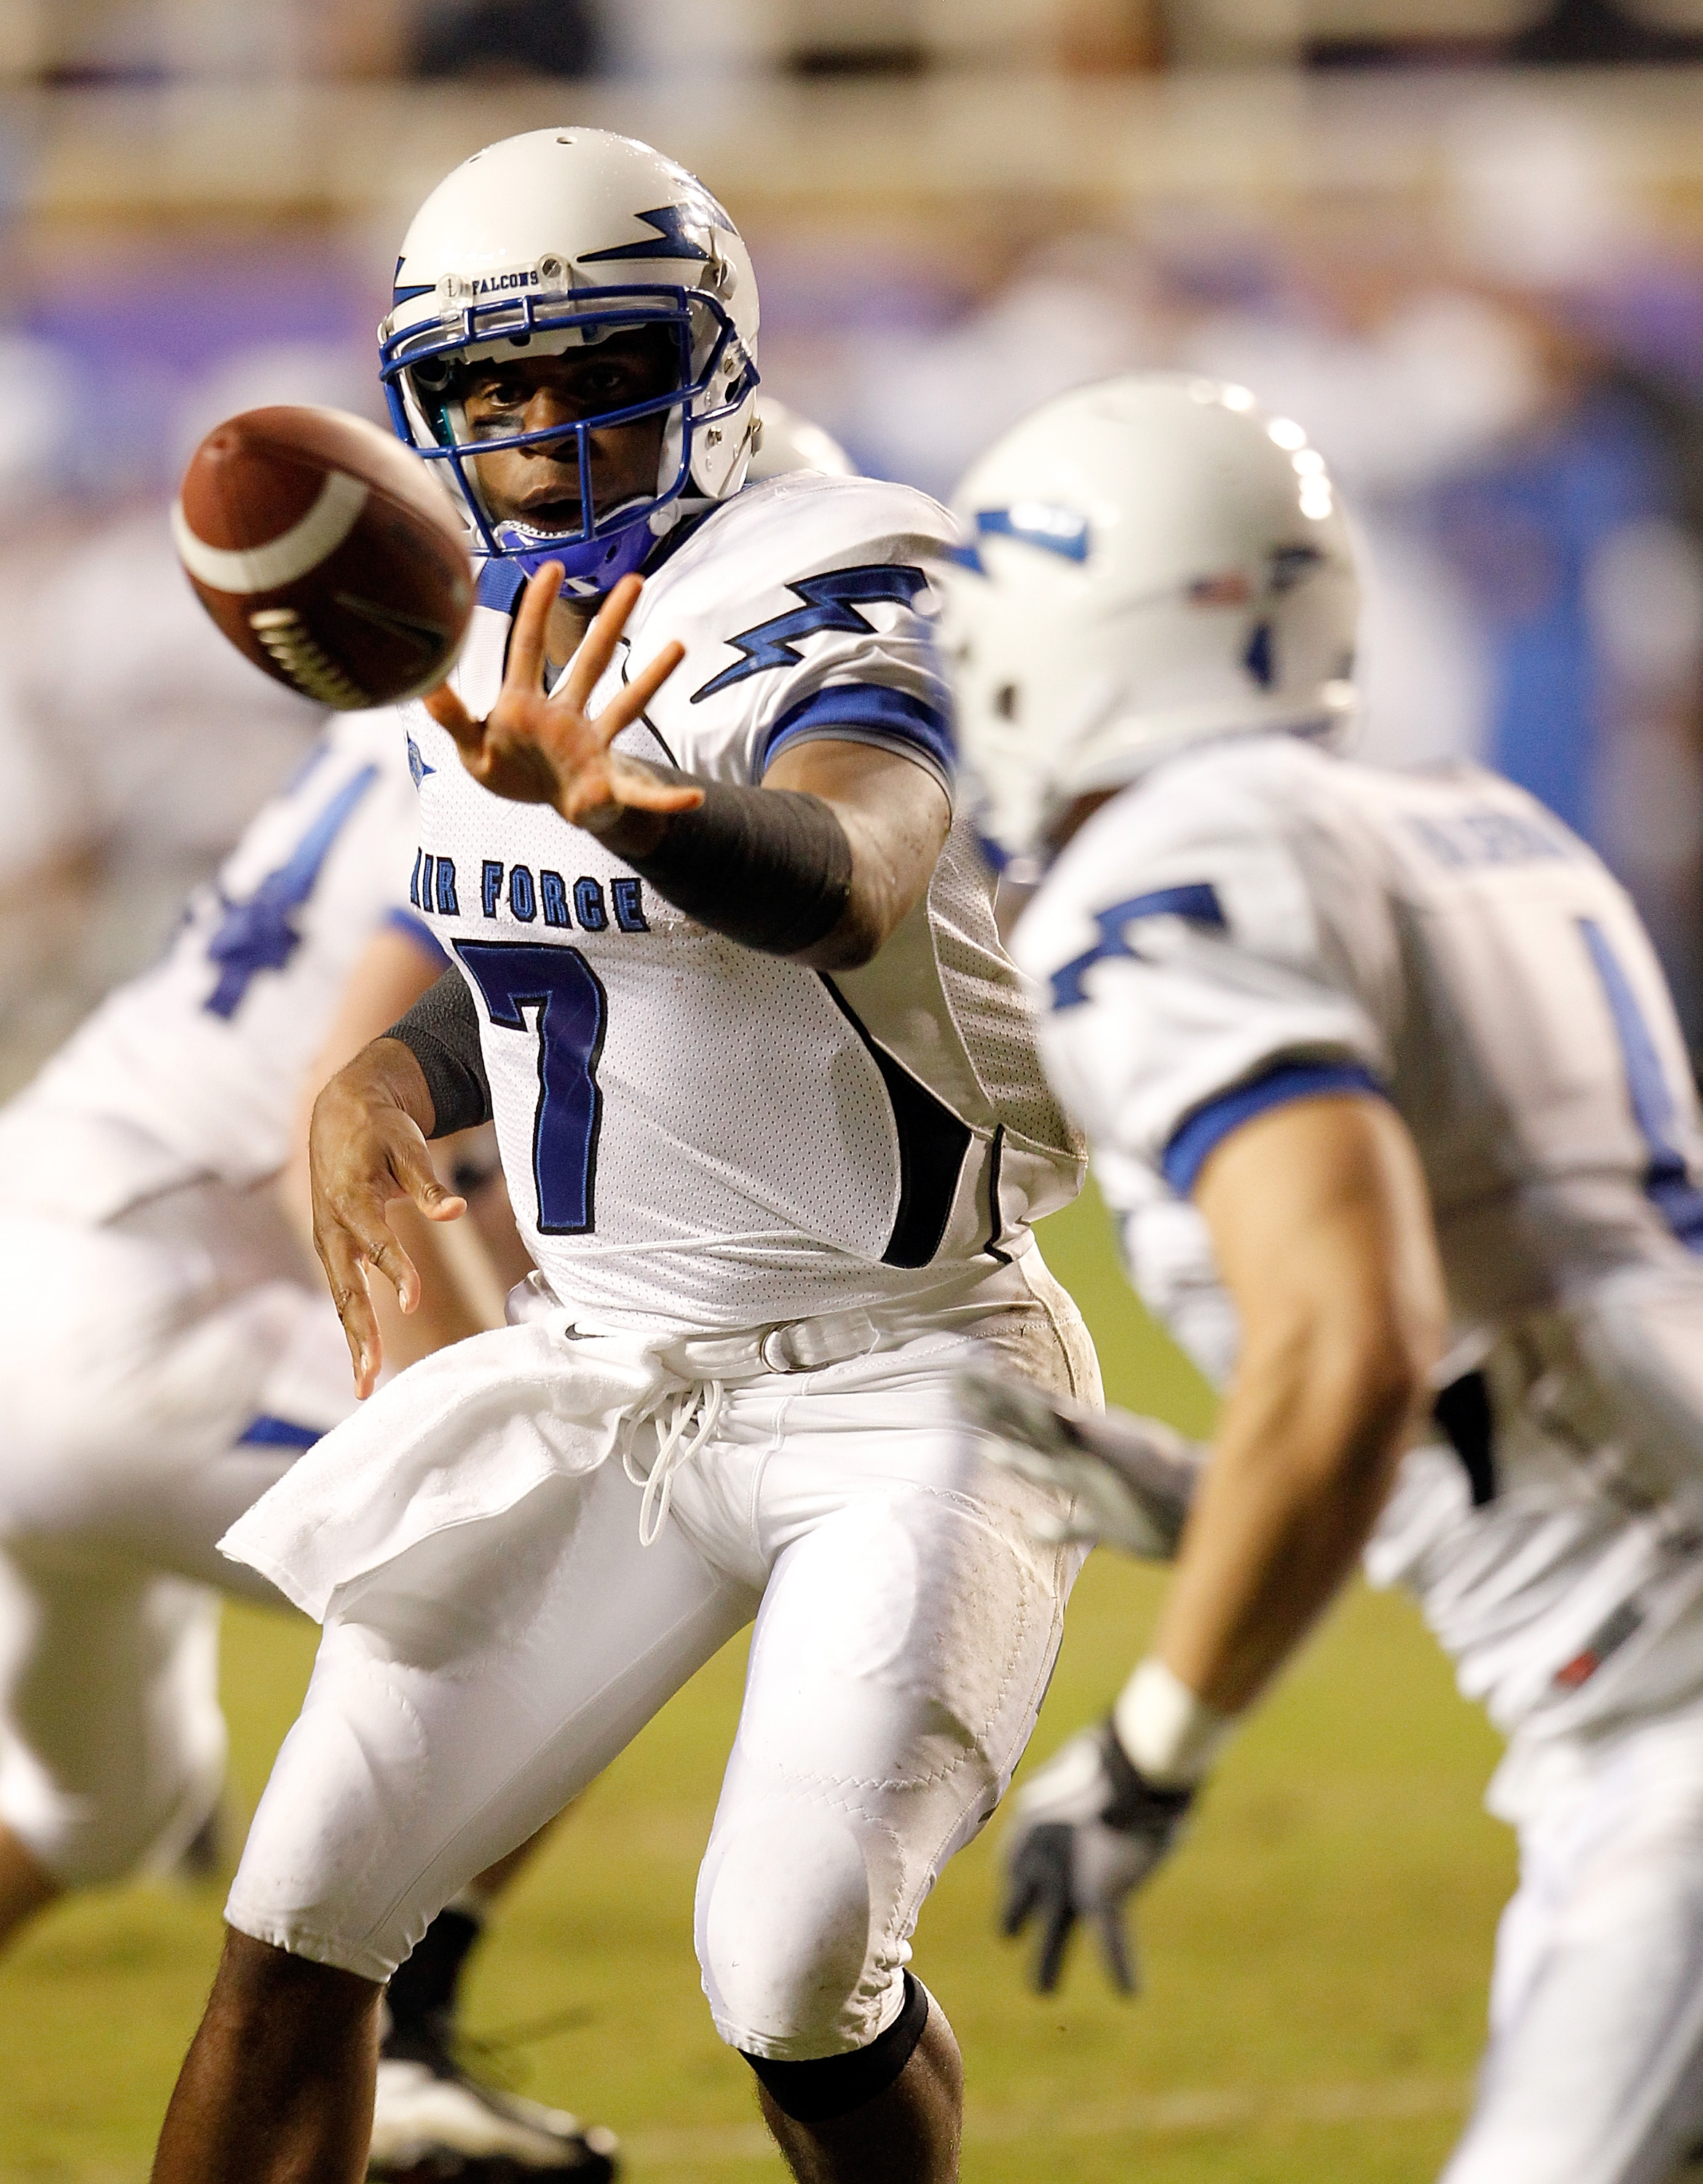 FORT WORTH, TX - OCTOBER 23:  Quarterback Tim Jefferson Jr. #7 of the Air Force Falcons pitches the ball to a receiver against the TCU Horned Frogs at Amon G. Carter Stadium on October 23, 2010 in Fort Worth, Texas.  (Photo by Tom Pennington/Getty Images)